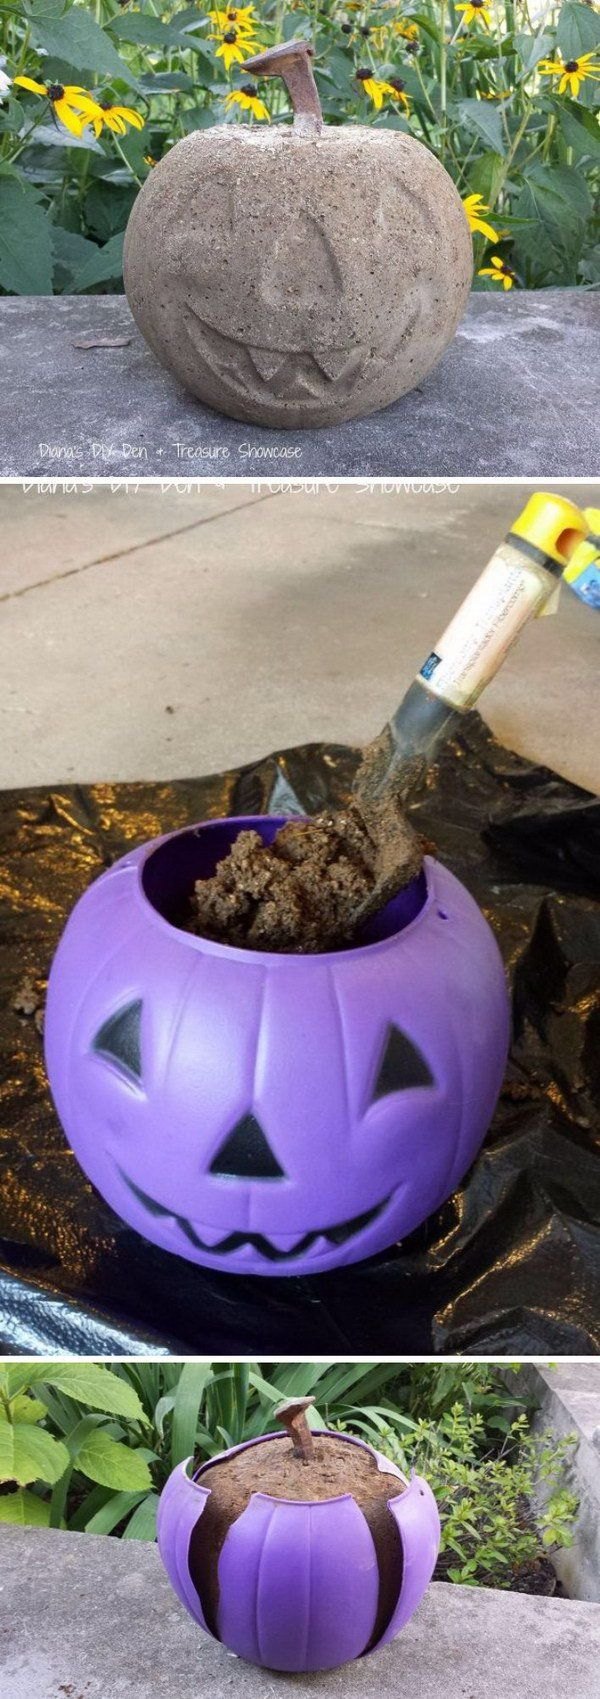 114 best Halloween images on Pinterest Halloween decorations - Homemade Halloween Decorations